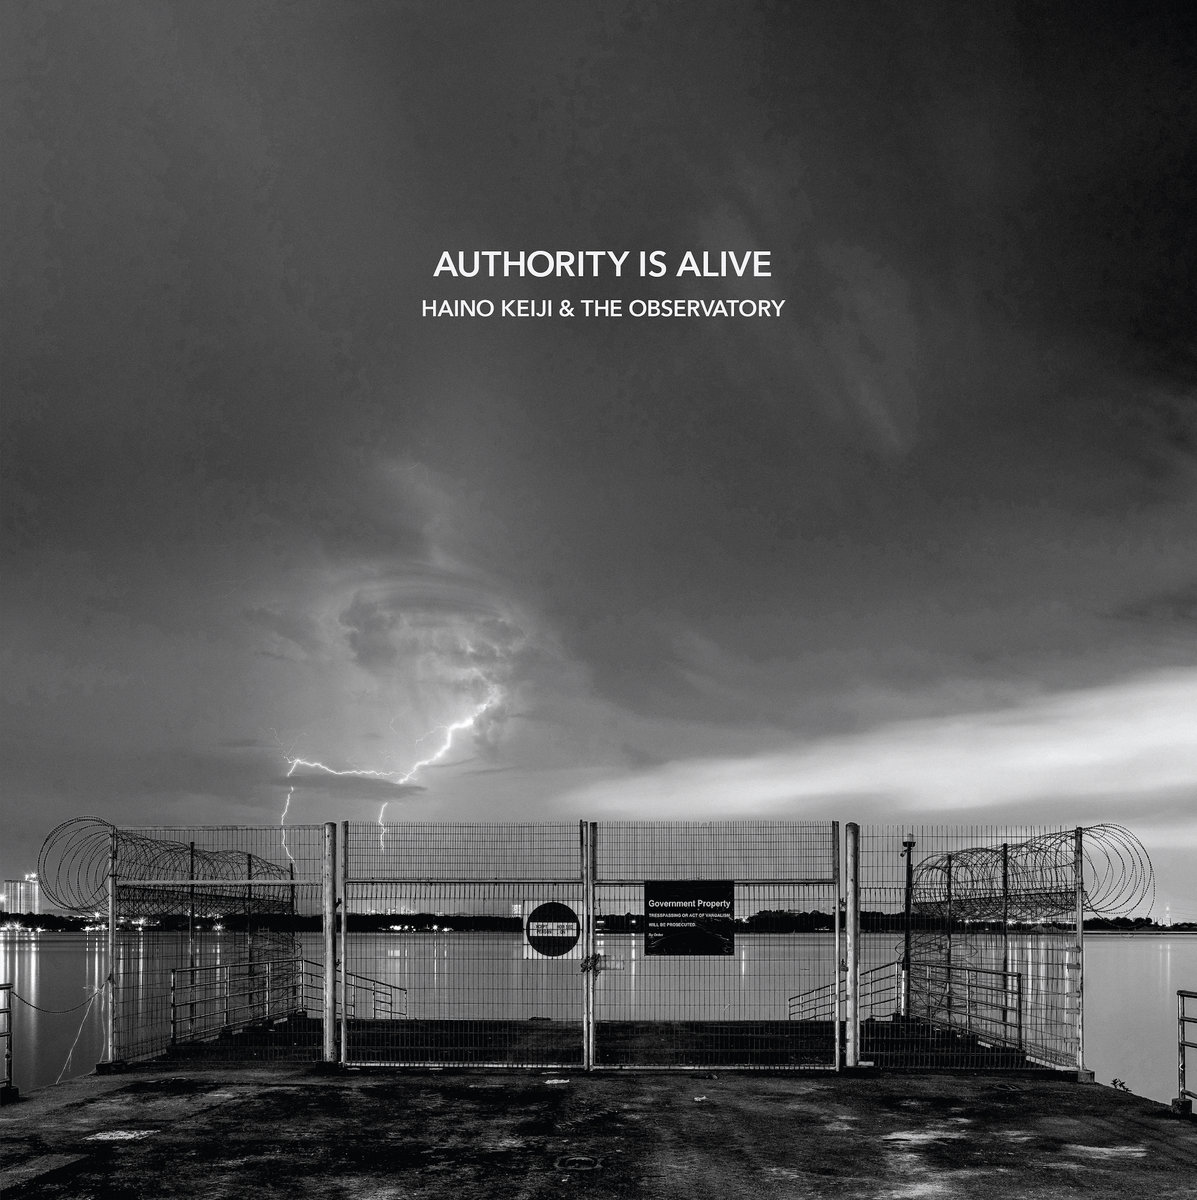 The Observatory / Keiji Haino - Authority is Alive